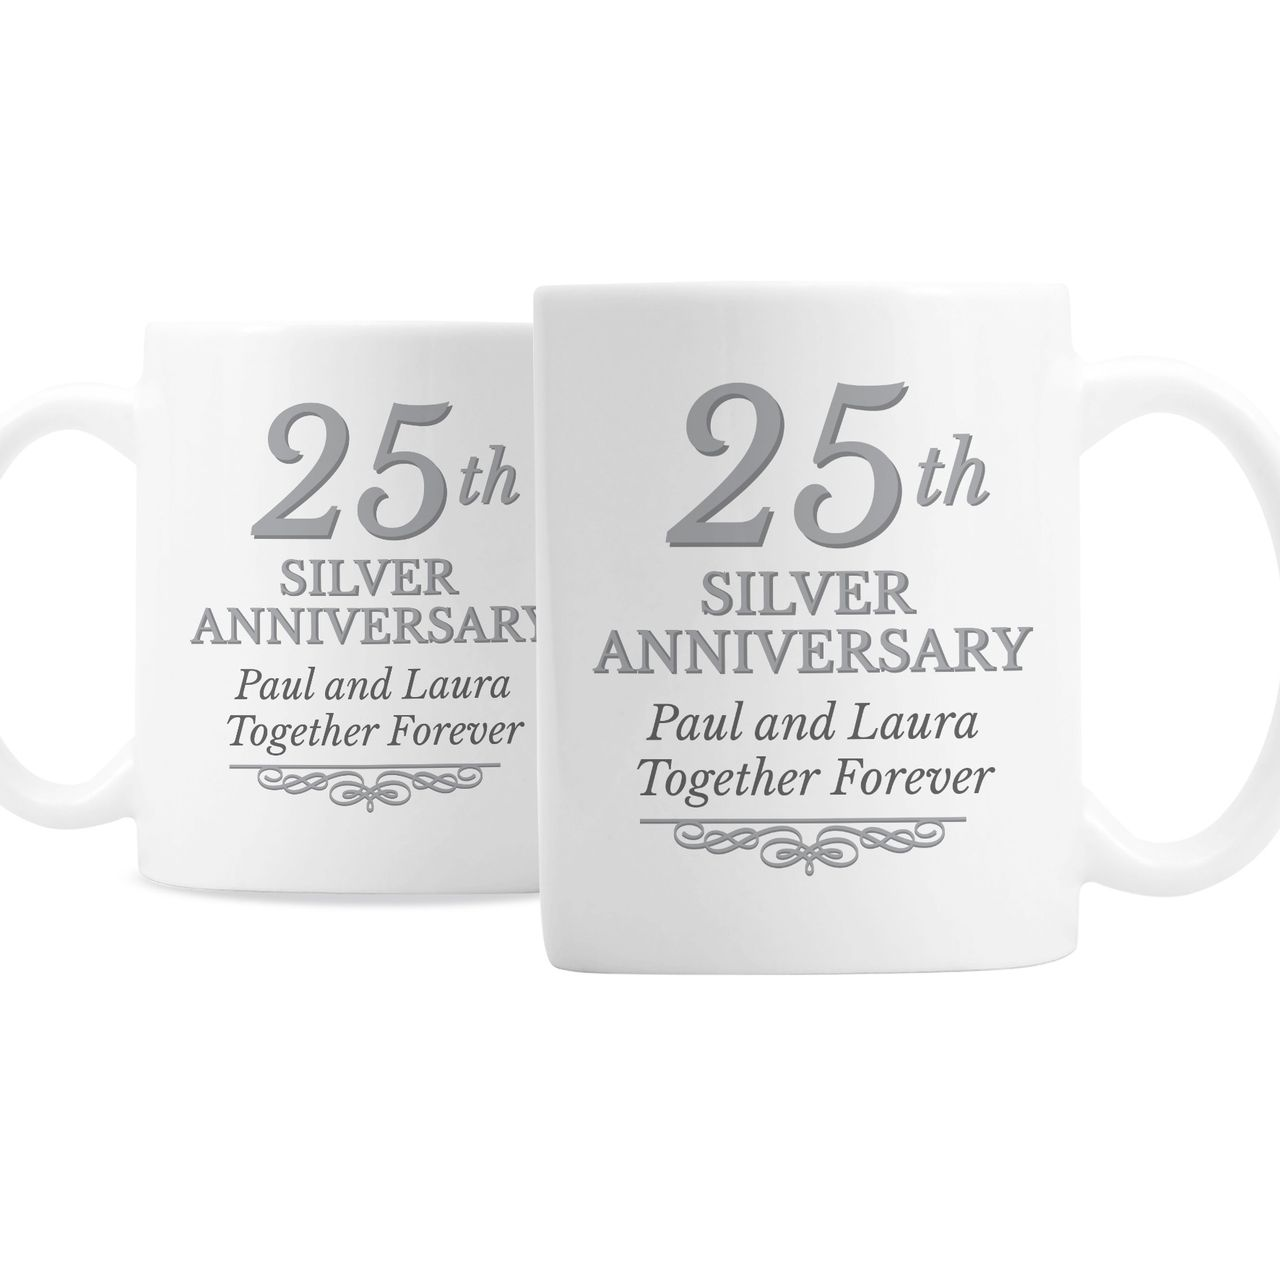 25th Anniversary Gifts For Her